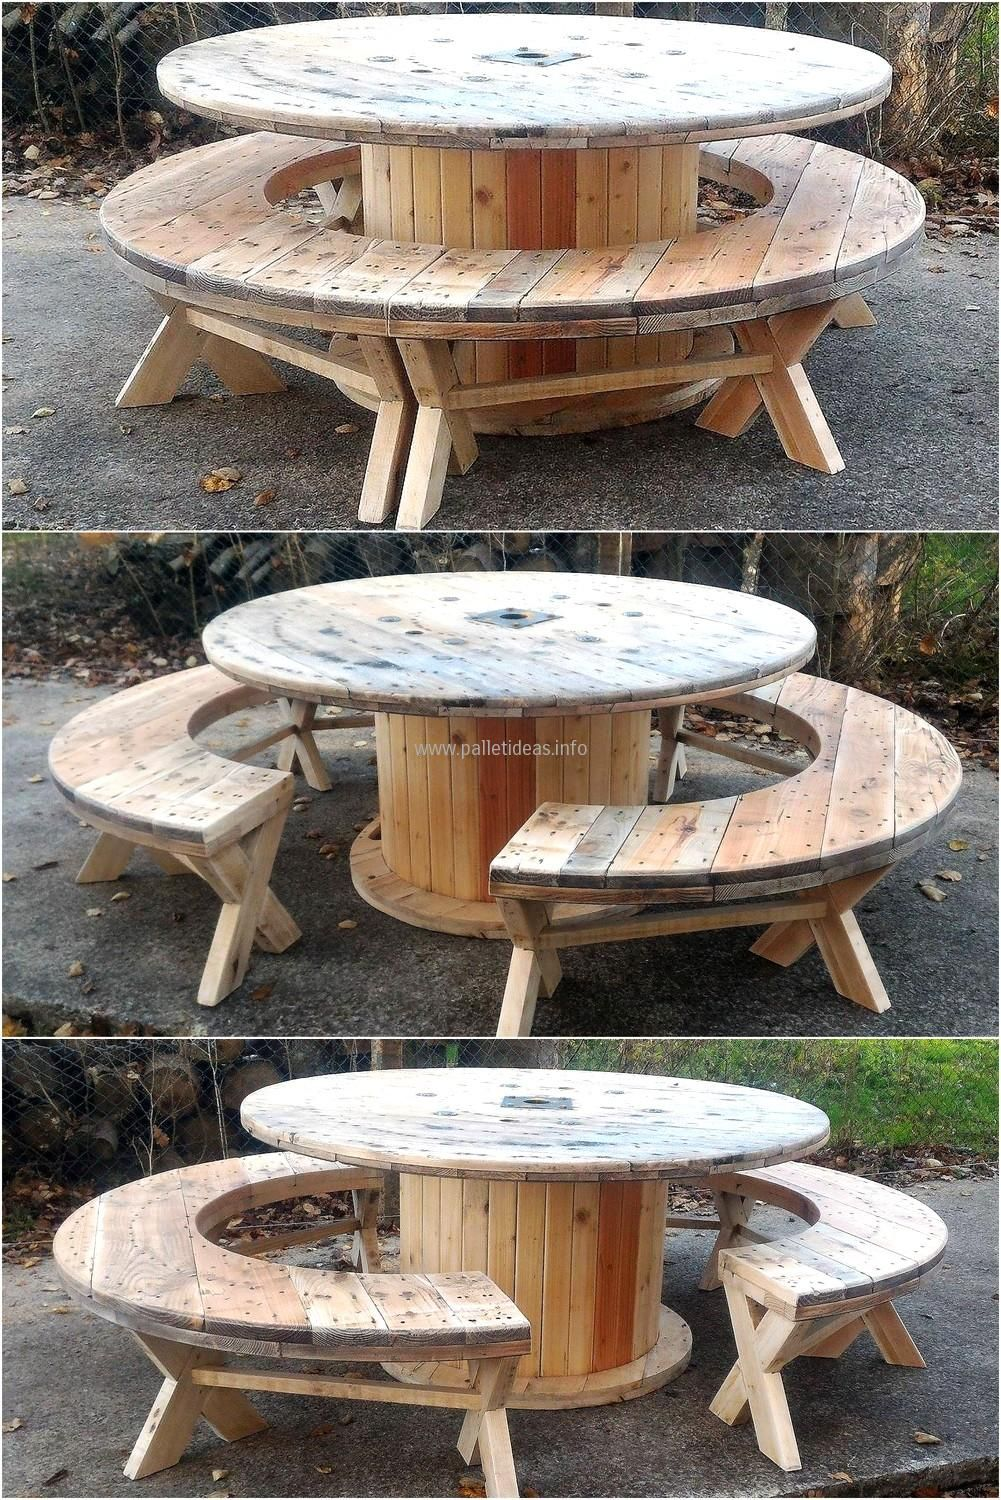 recycled-pallet-cable-reel-patio-furniture | Pallet ...